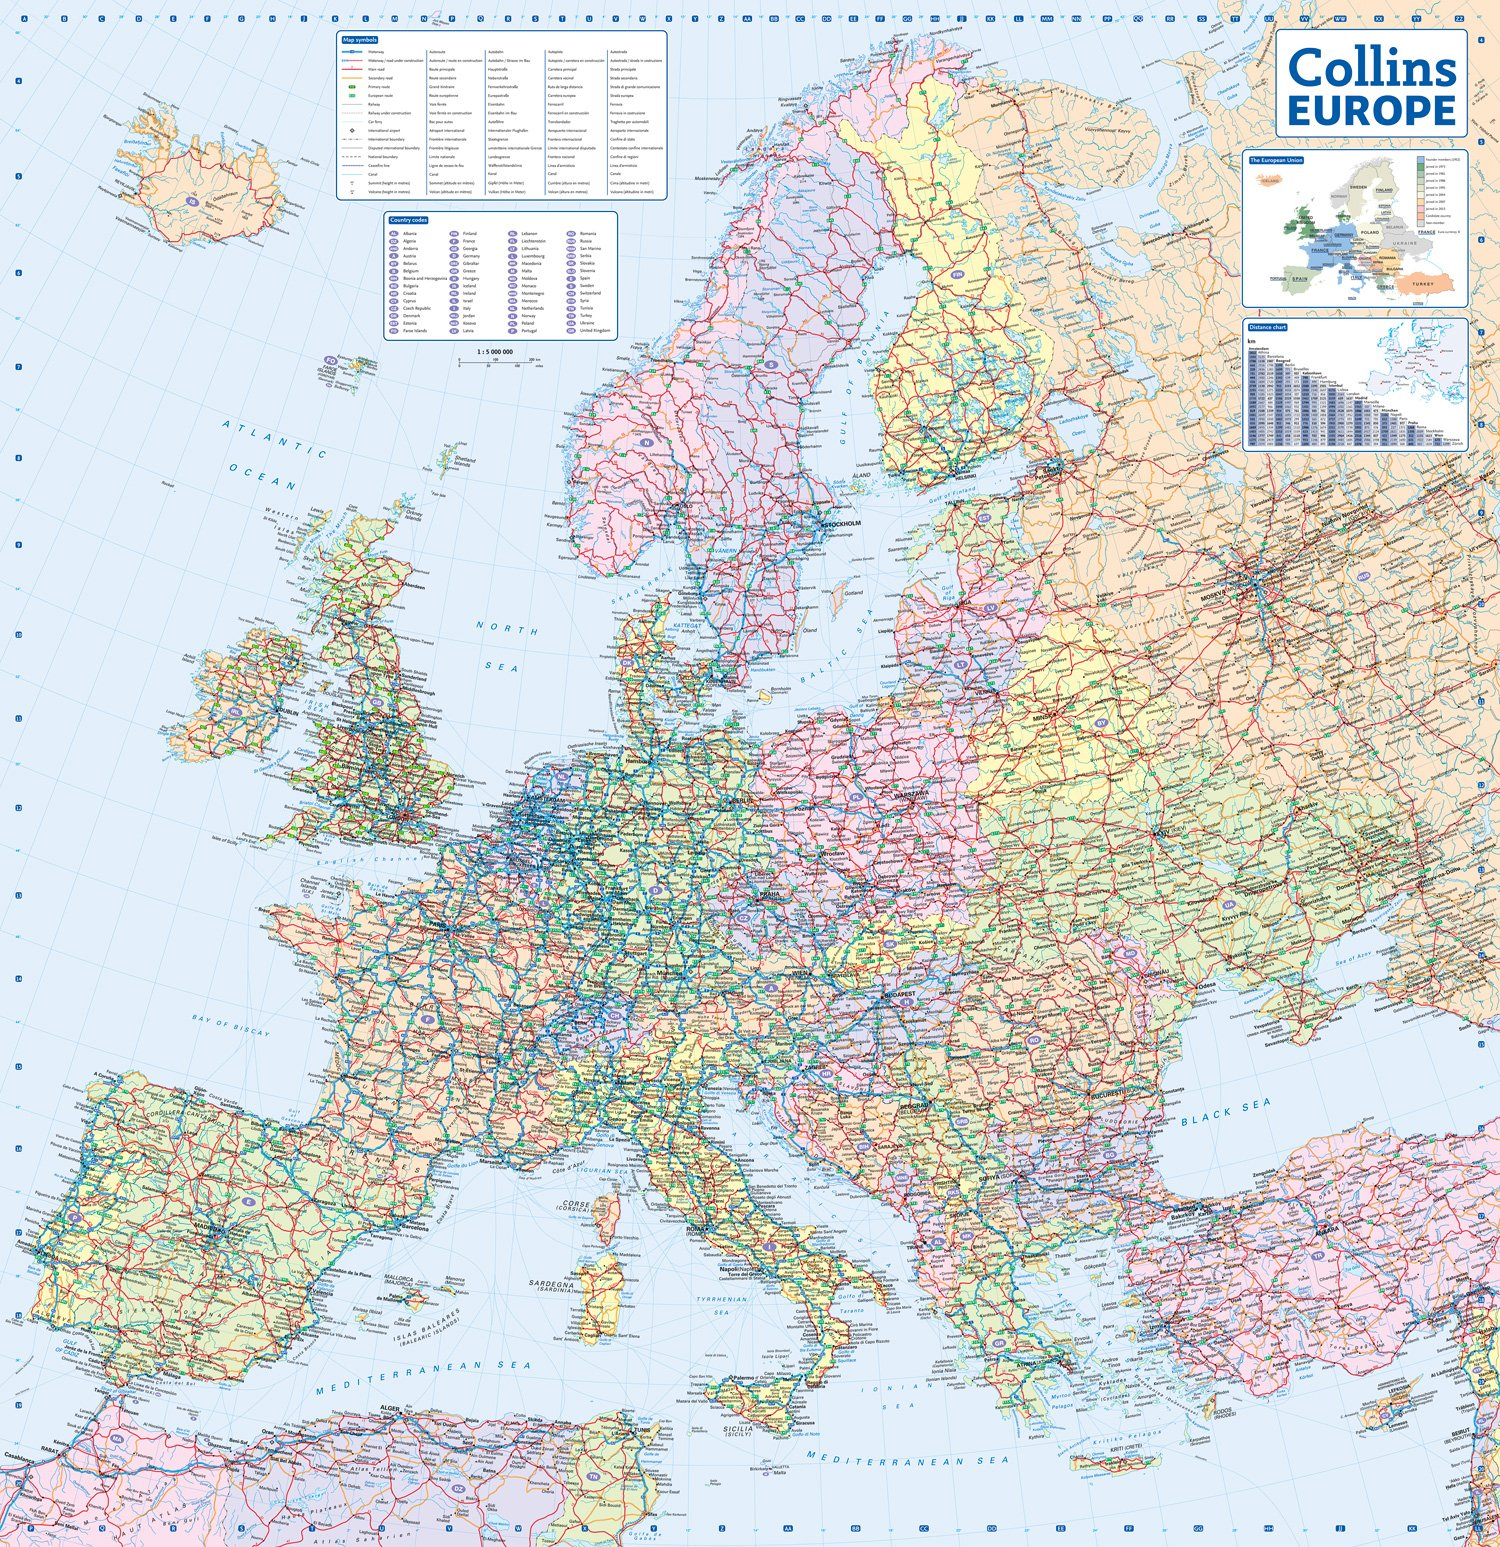 2015 Map Of Europe.2016 Collins Map Of Europe Collins Maps 9780008146368 Amazon Com